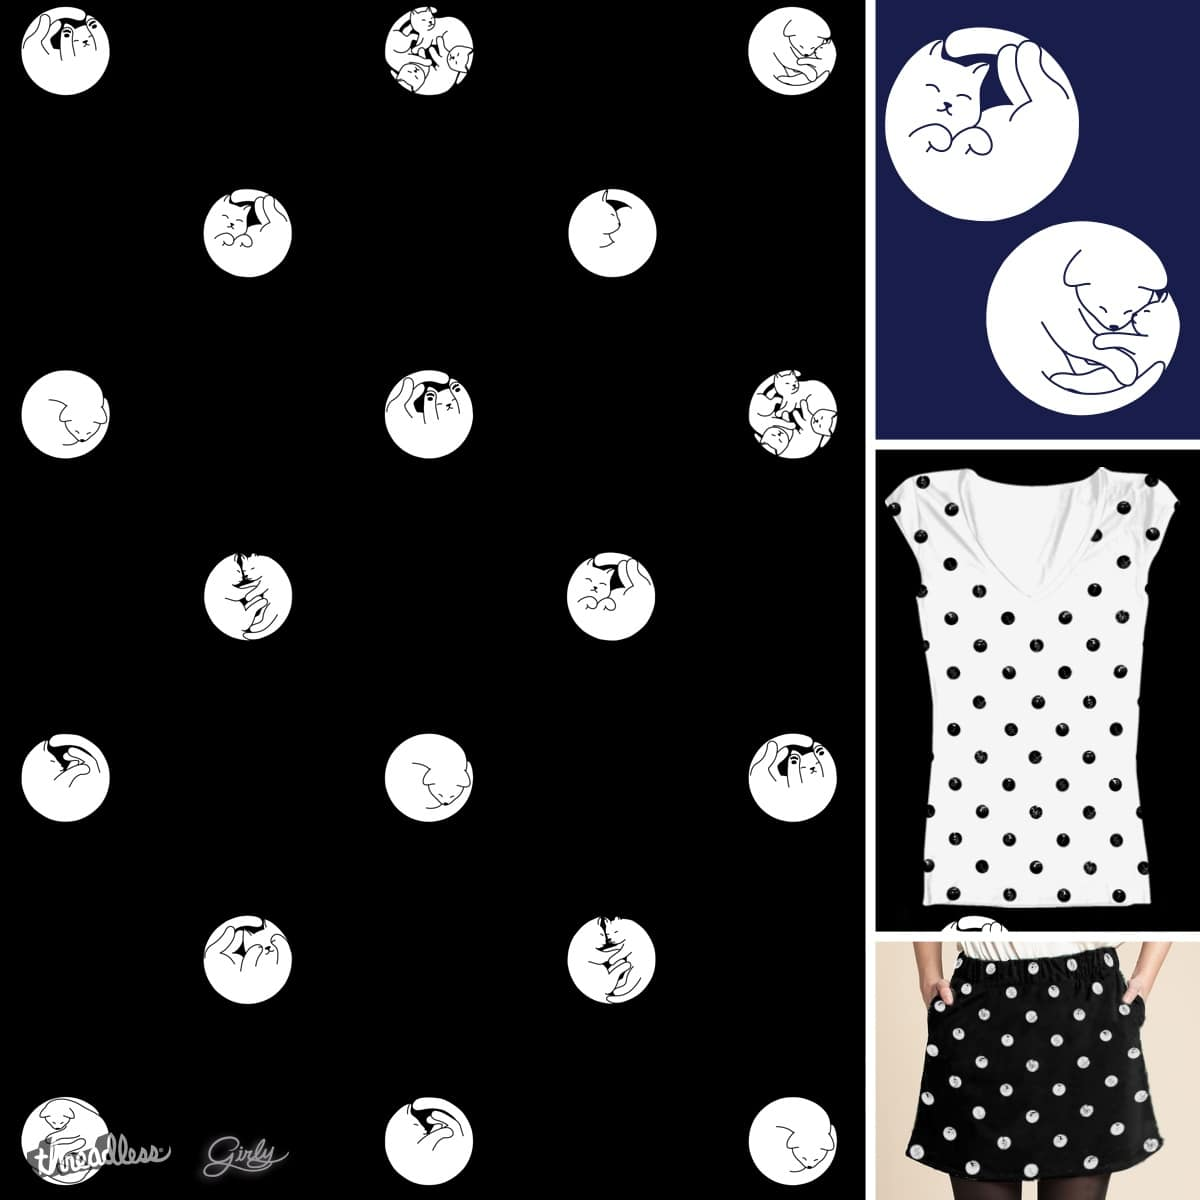 Sleeping Cats by Oikiden on Threadless